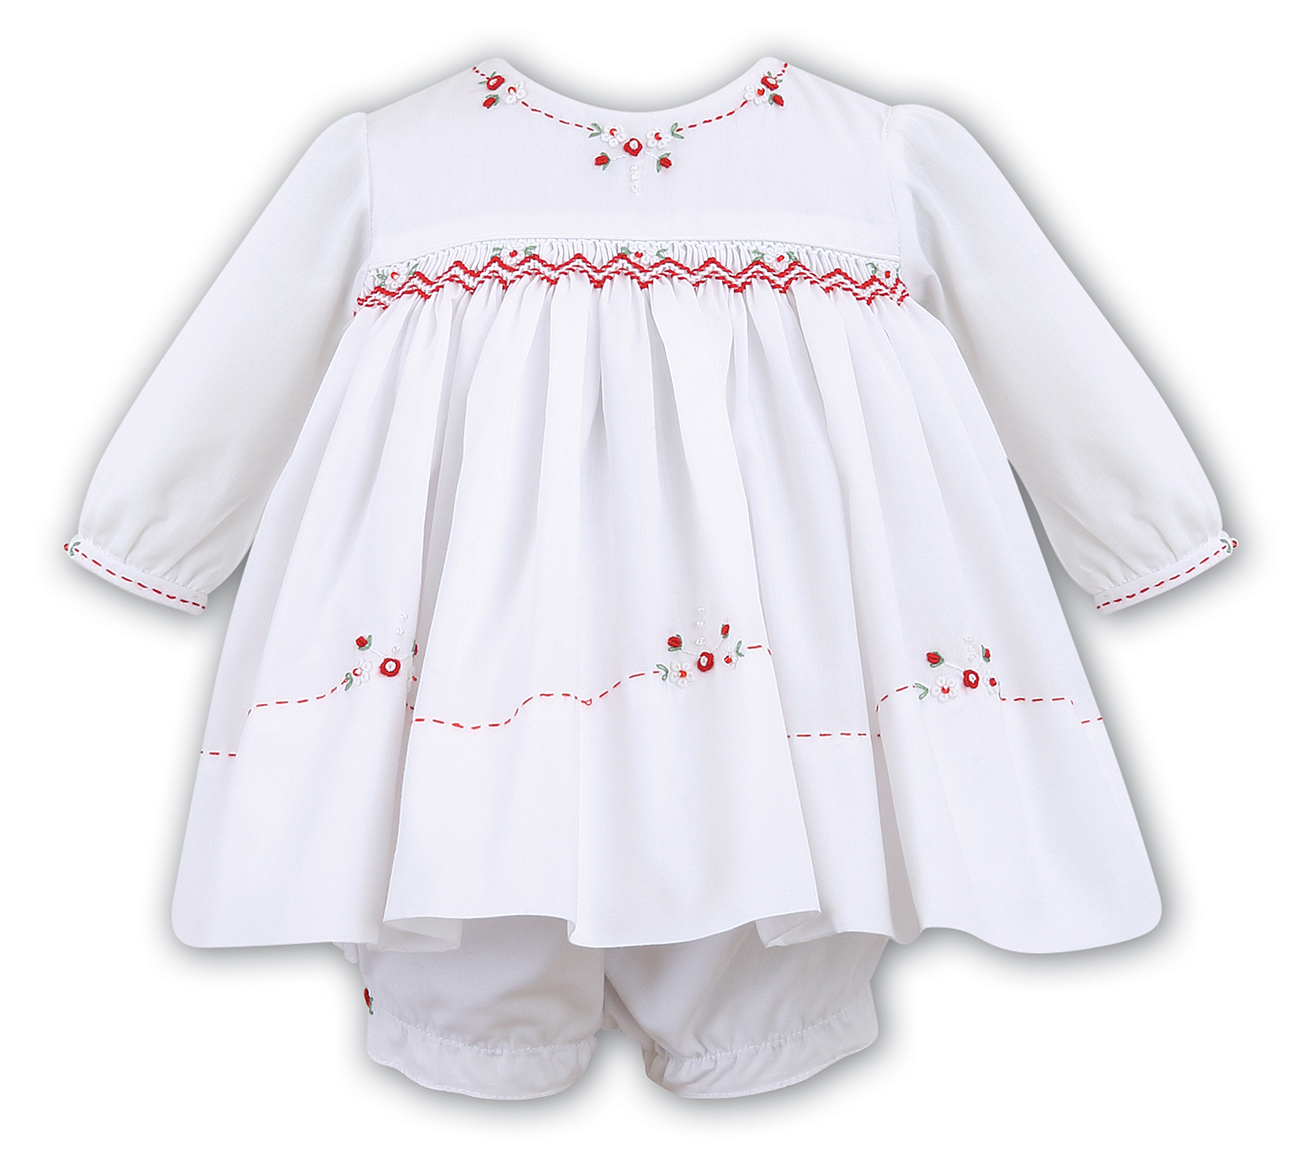 4124bb3a9bdfa NEW Sarah Louise White Smocked Dress and Ruffled Diaper Cover with ...